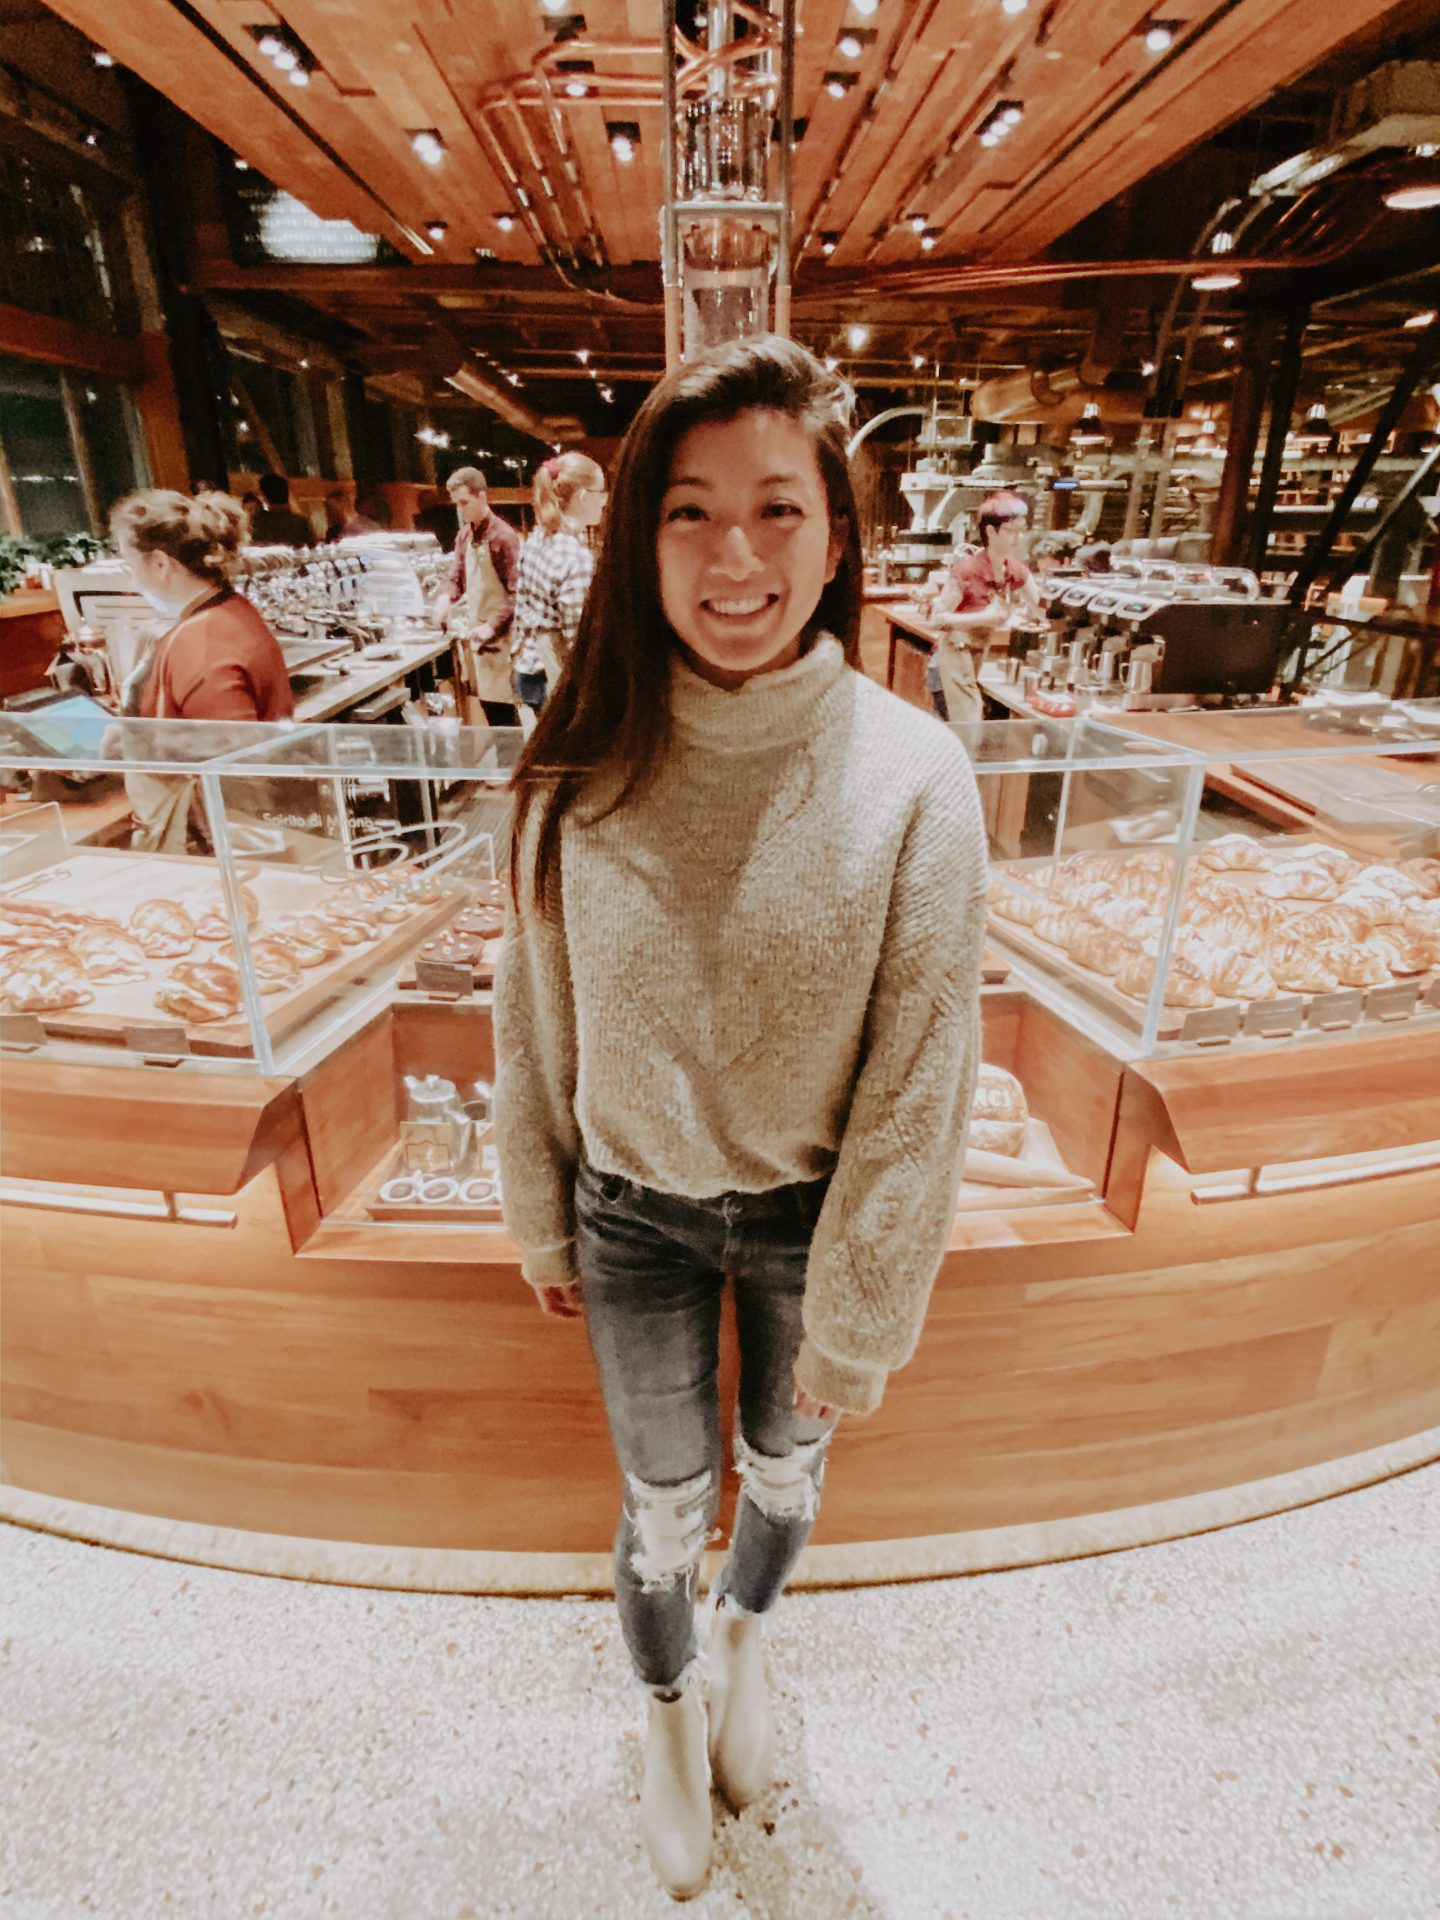 Heading to Seattle Washington soon? Los Angeles Lifestyle Blogger My Teachers Got Style is sharing what to do, see, eat and visit in her Seattle Travel Guide HERE!